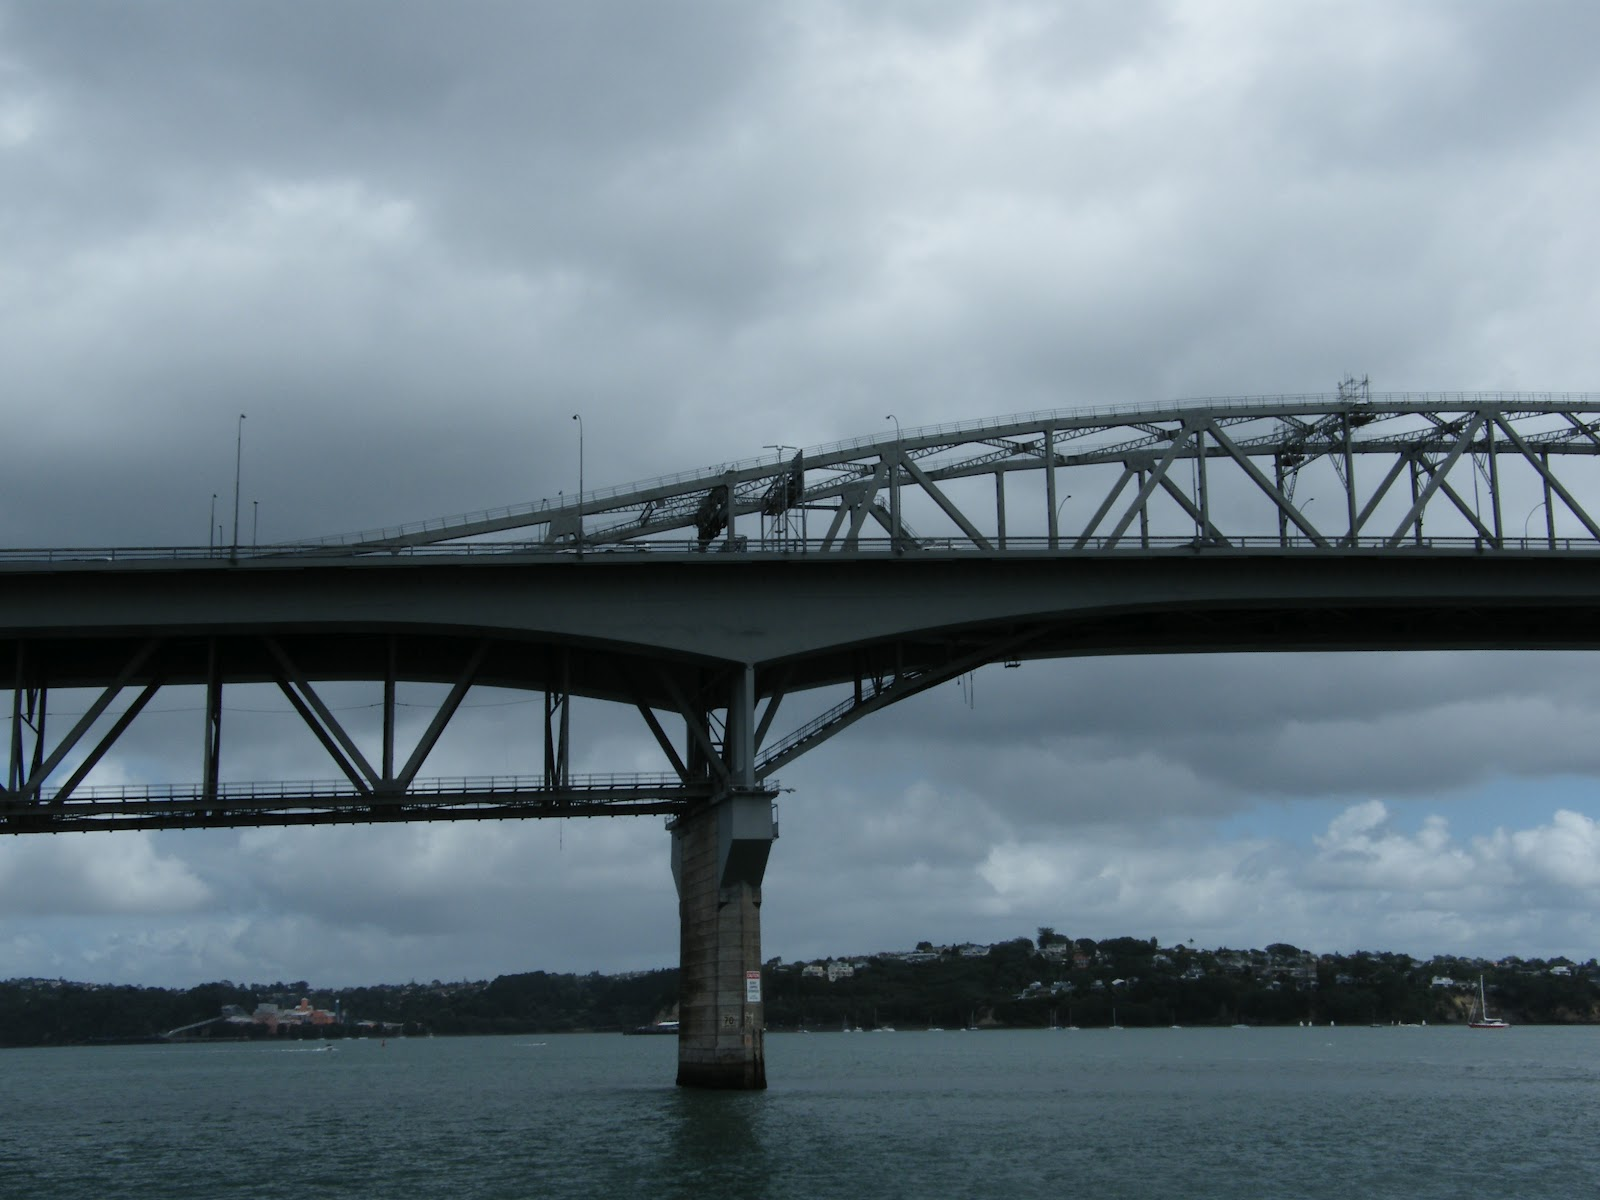 bridges this week s frifotos theme twitter travel discussion auckland bridge is not the most attractive bridge in the world but it serves a purpose as the lifeline between the north shores of the city of auckland and